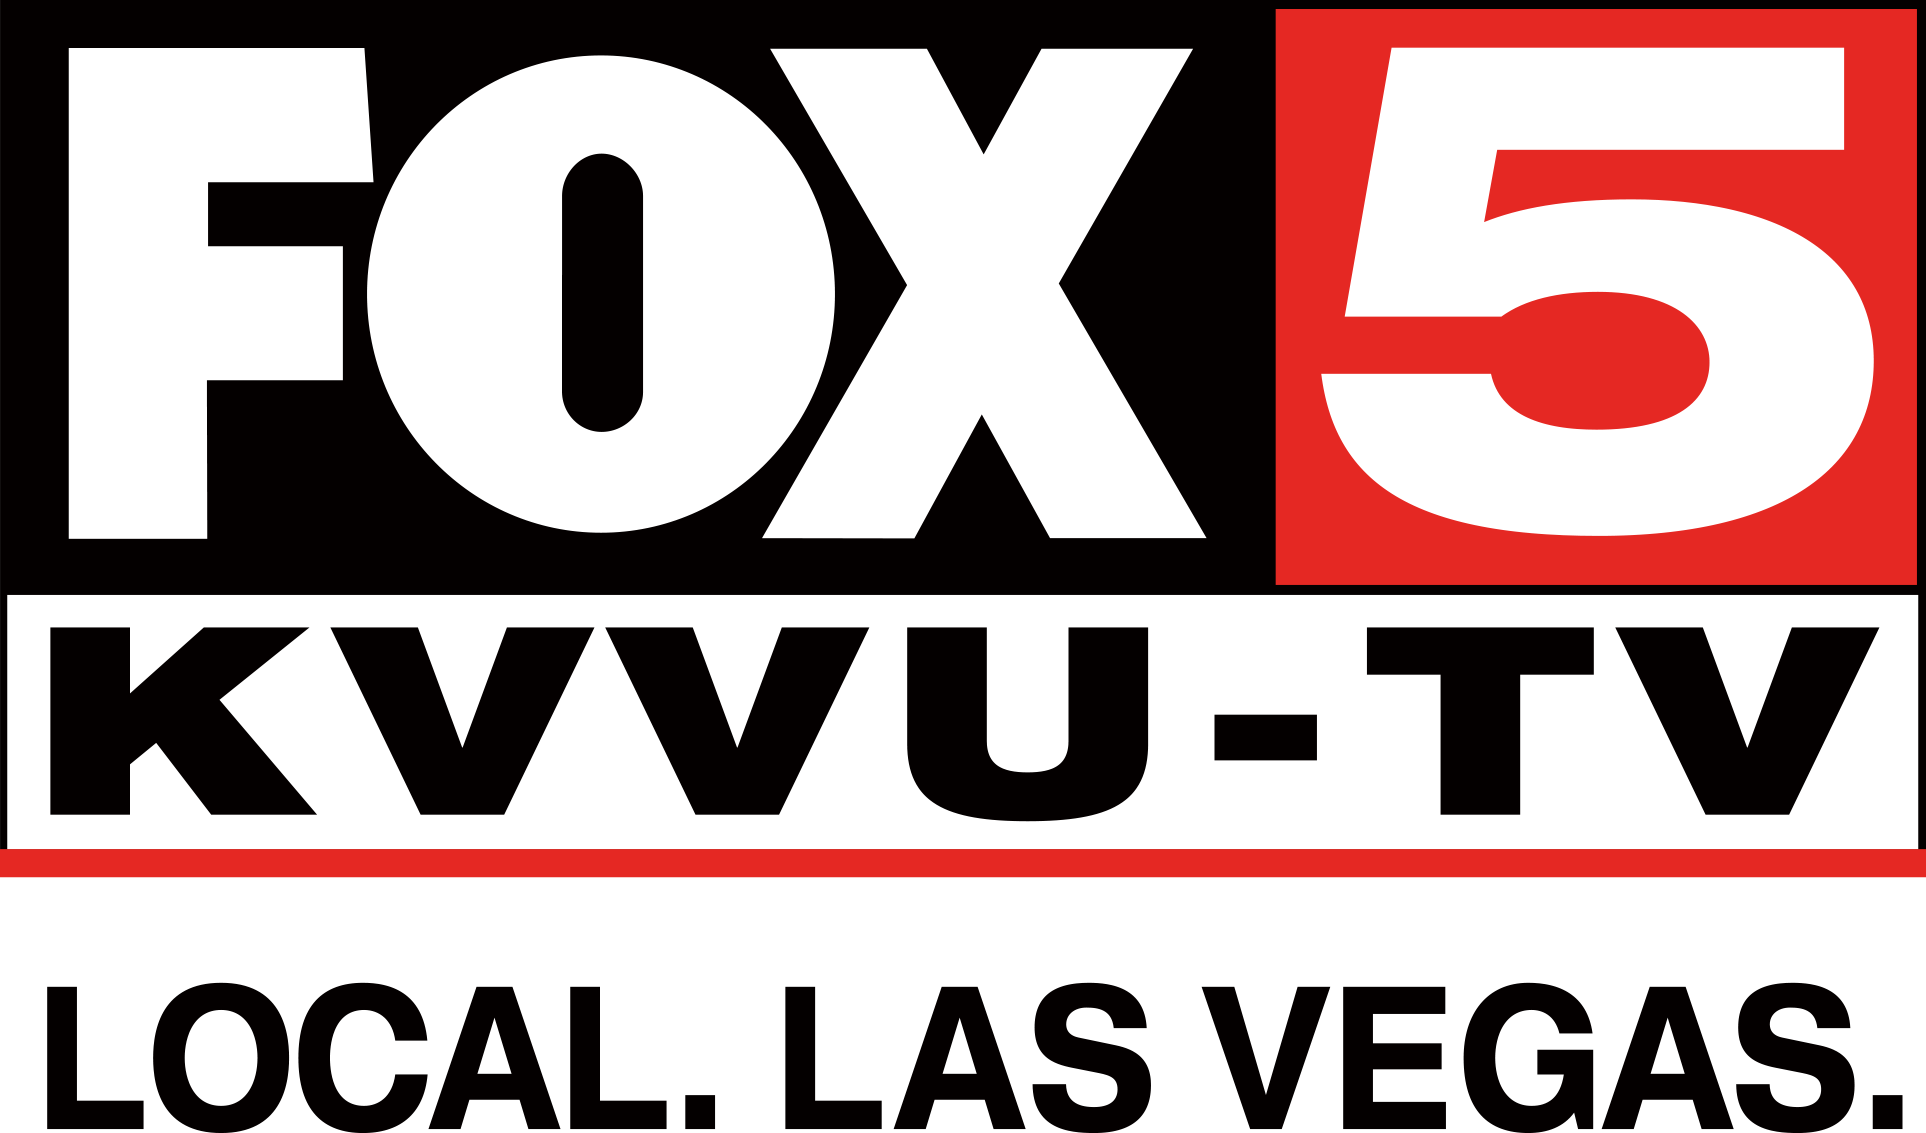 FOX5 KVVU Black 2015 RGB (2).png